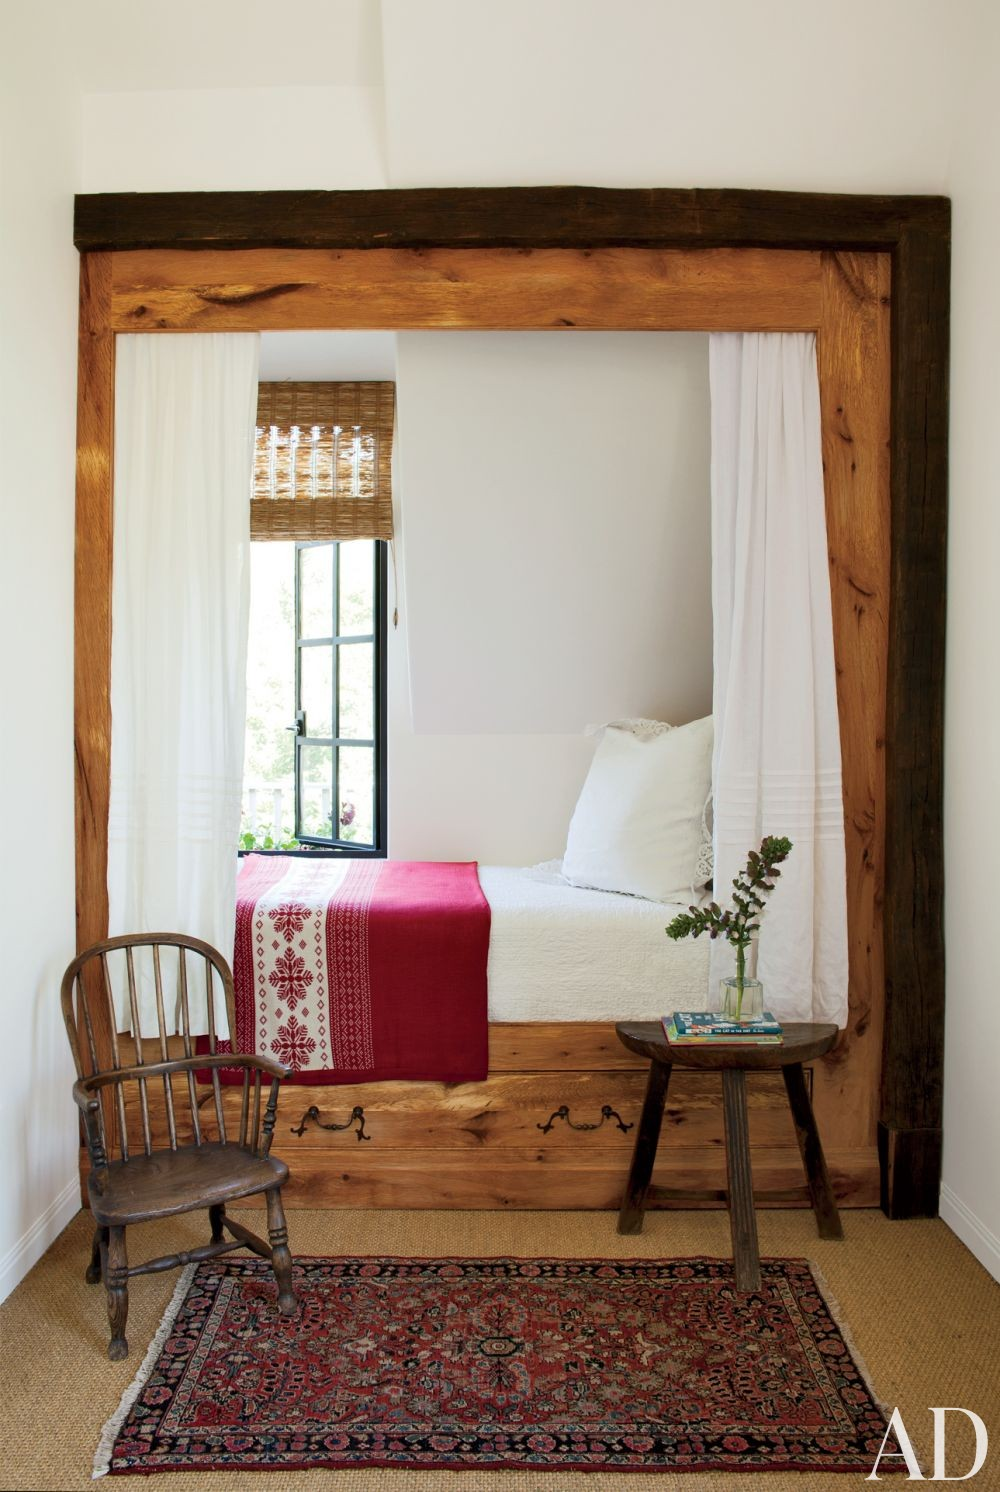 Rustic Children\'s Room by Rela Gleason and McAlpine Tankersley Architecture in Calistoga, California